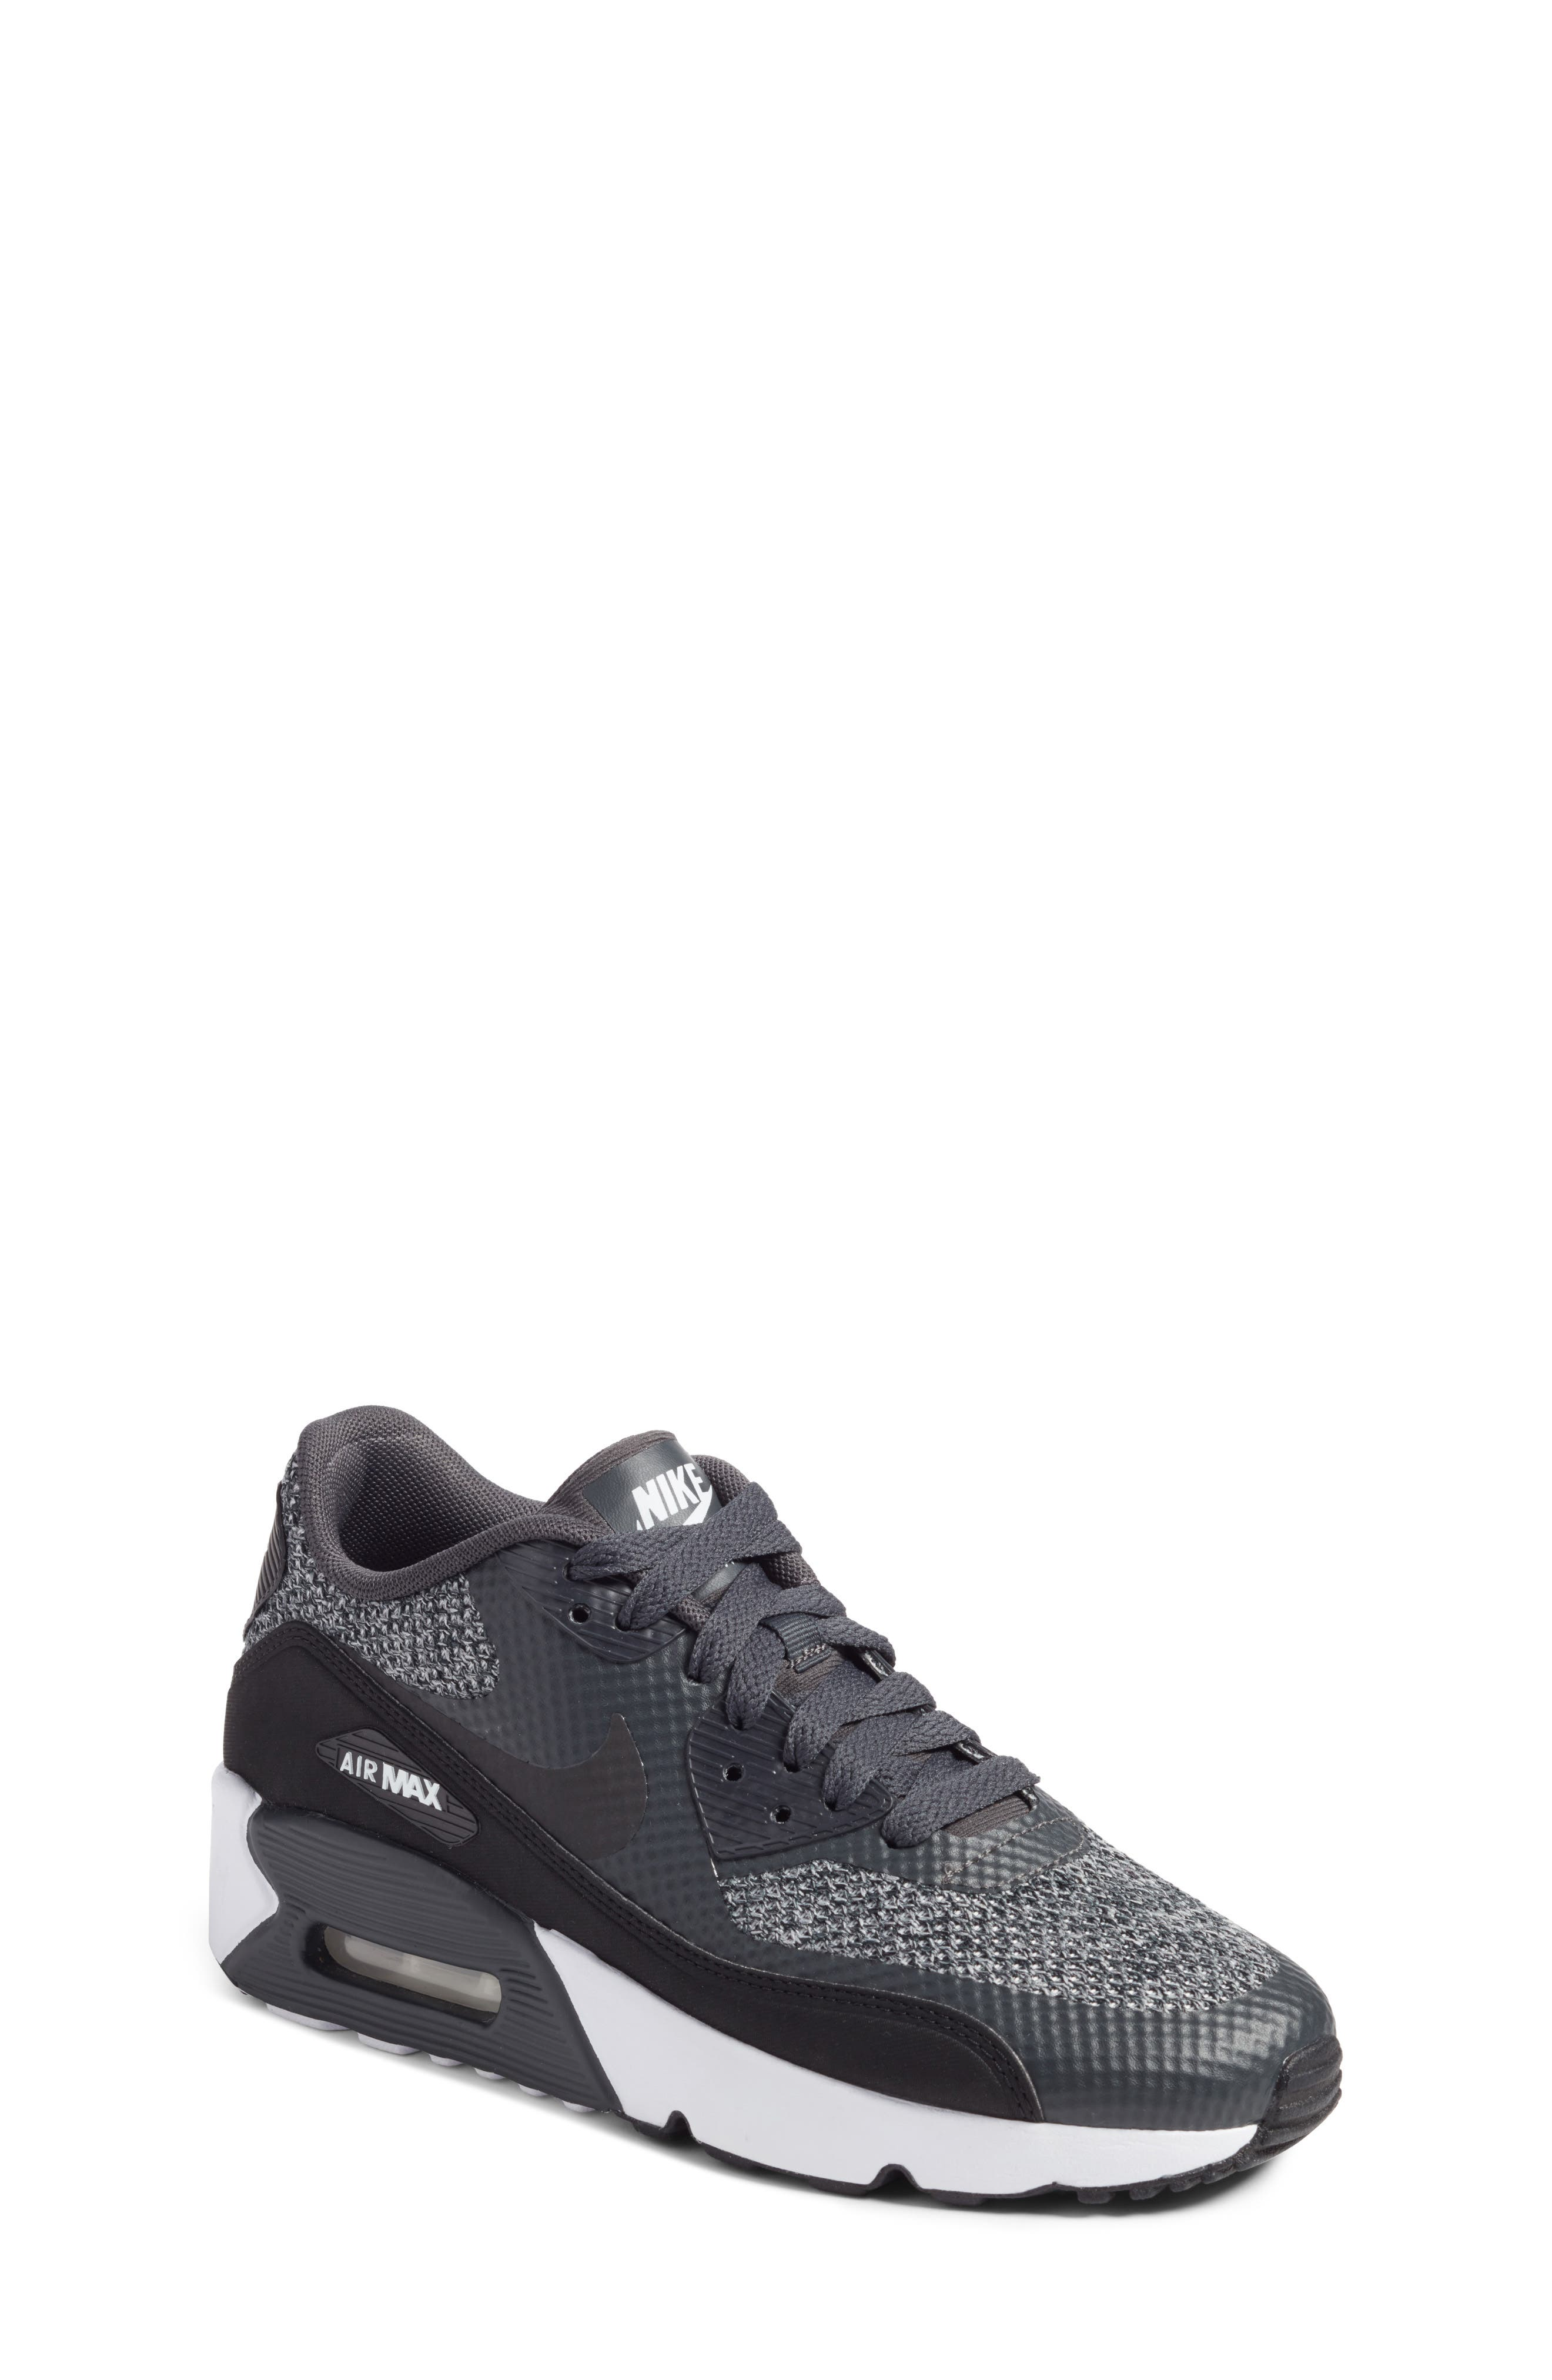 Alternate Image 1 Selected - Nike Air Max 90 Ultra 2.0 SE Sneaker (Big Kid)